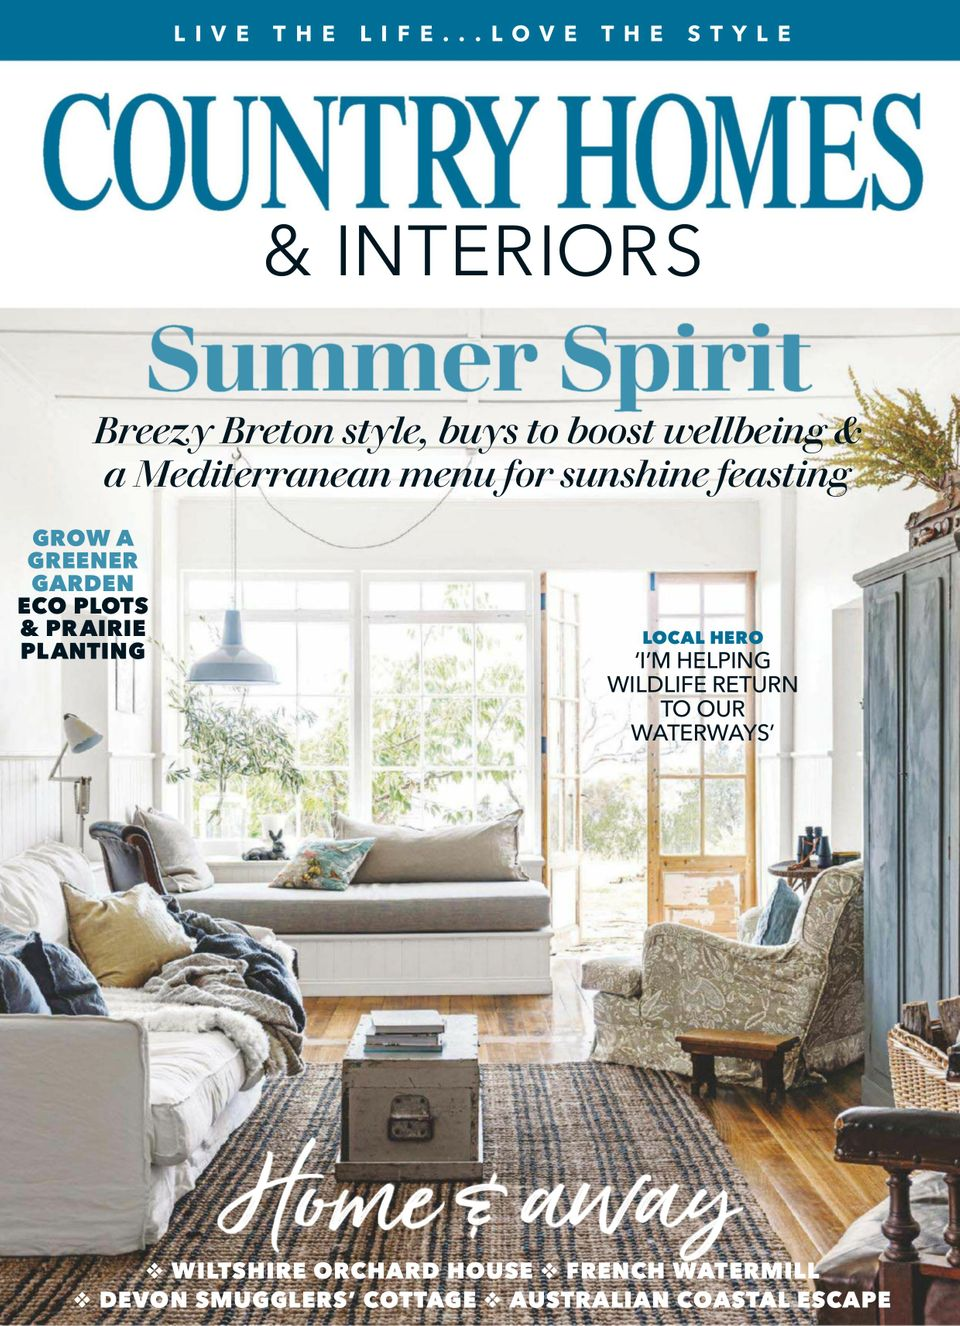 Get your digital copy of Country Homes & Interiors August 20 issue